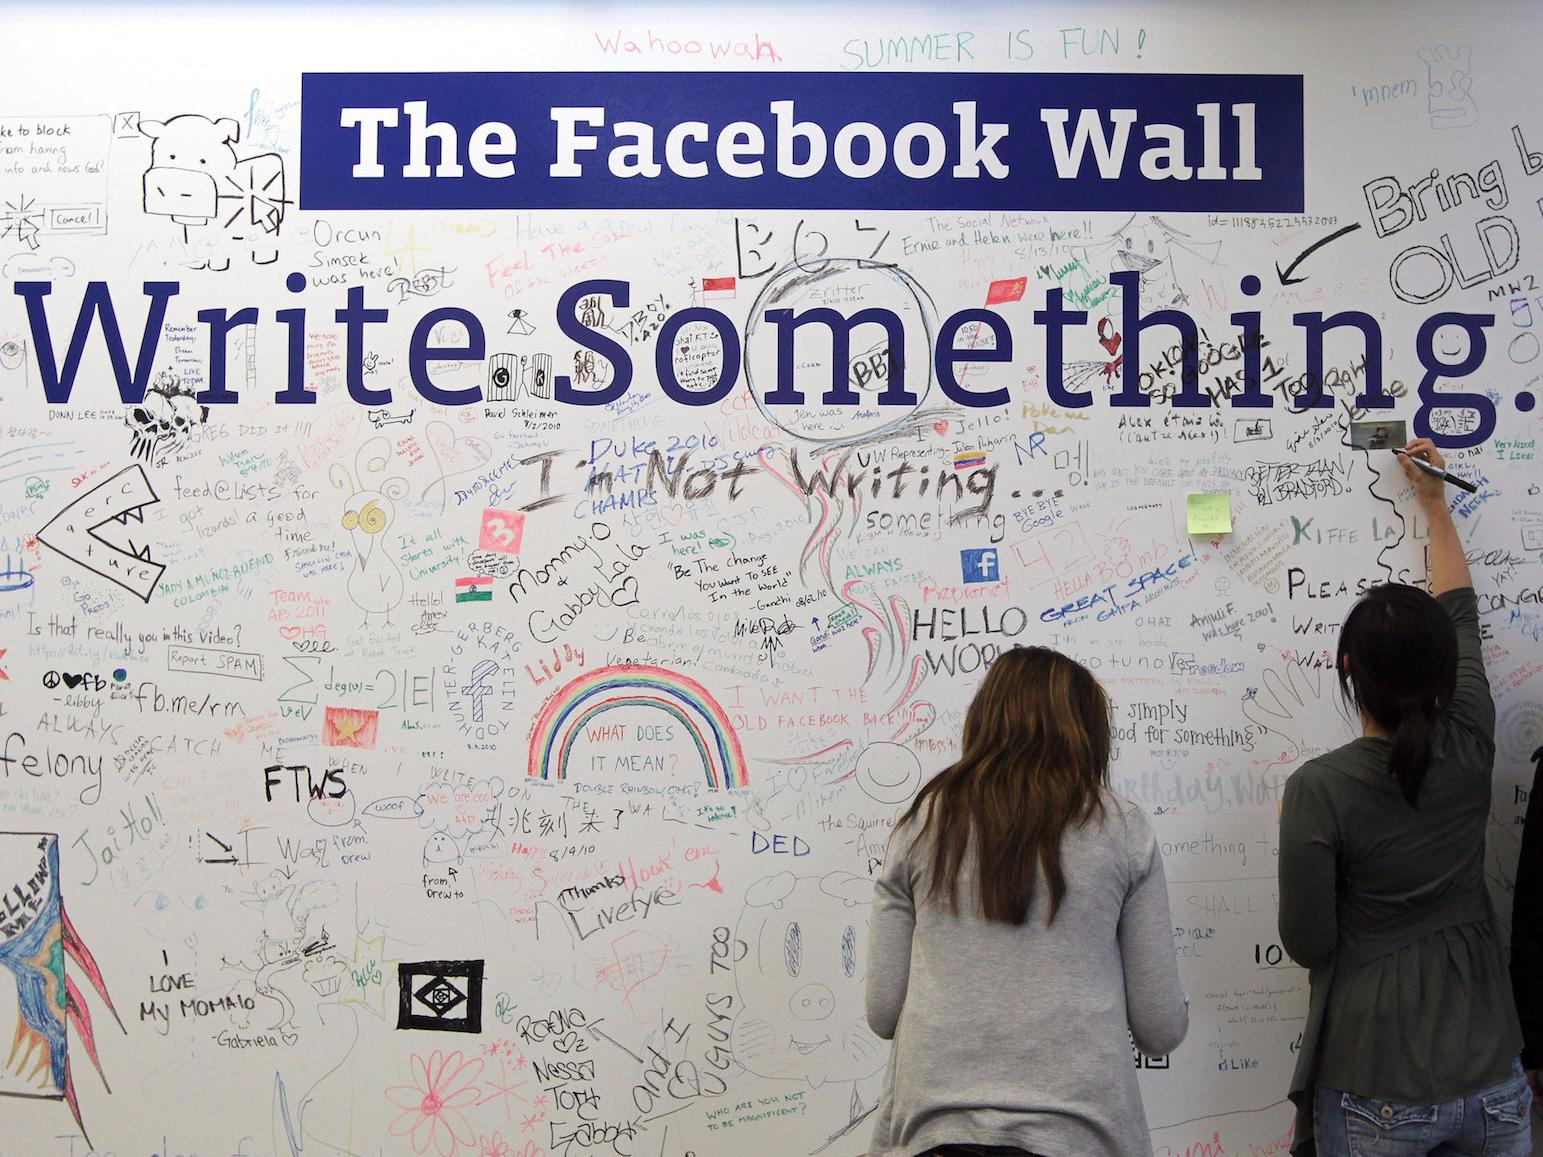 The 5 values Facebook looks for in every employee